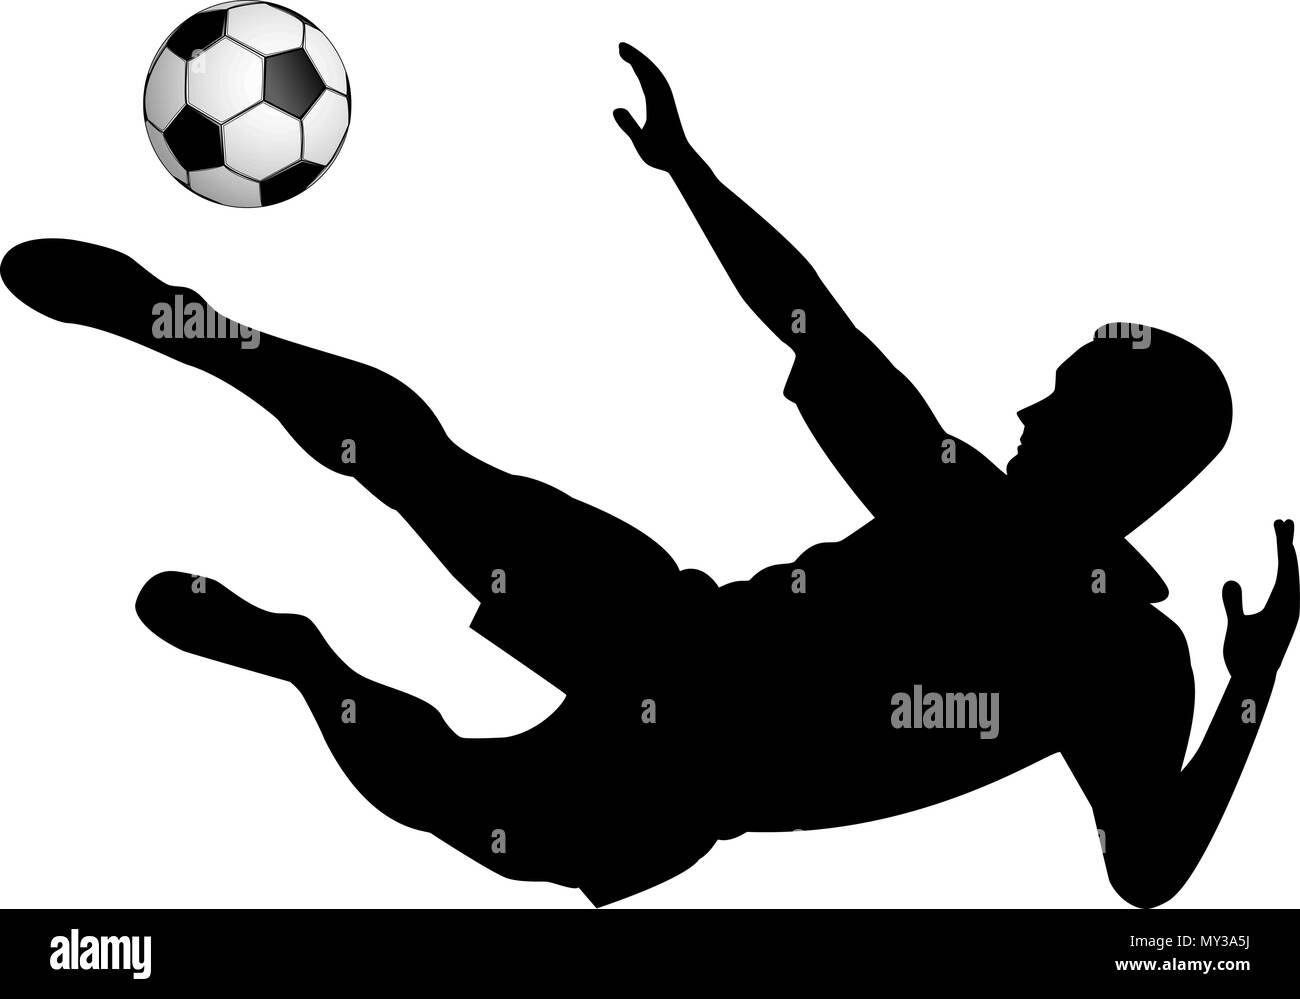 Silhouette of soccer player with a ball on a white background. - Stock Vector